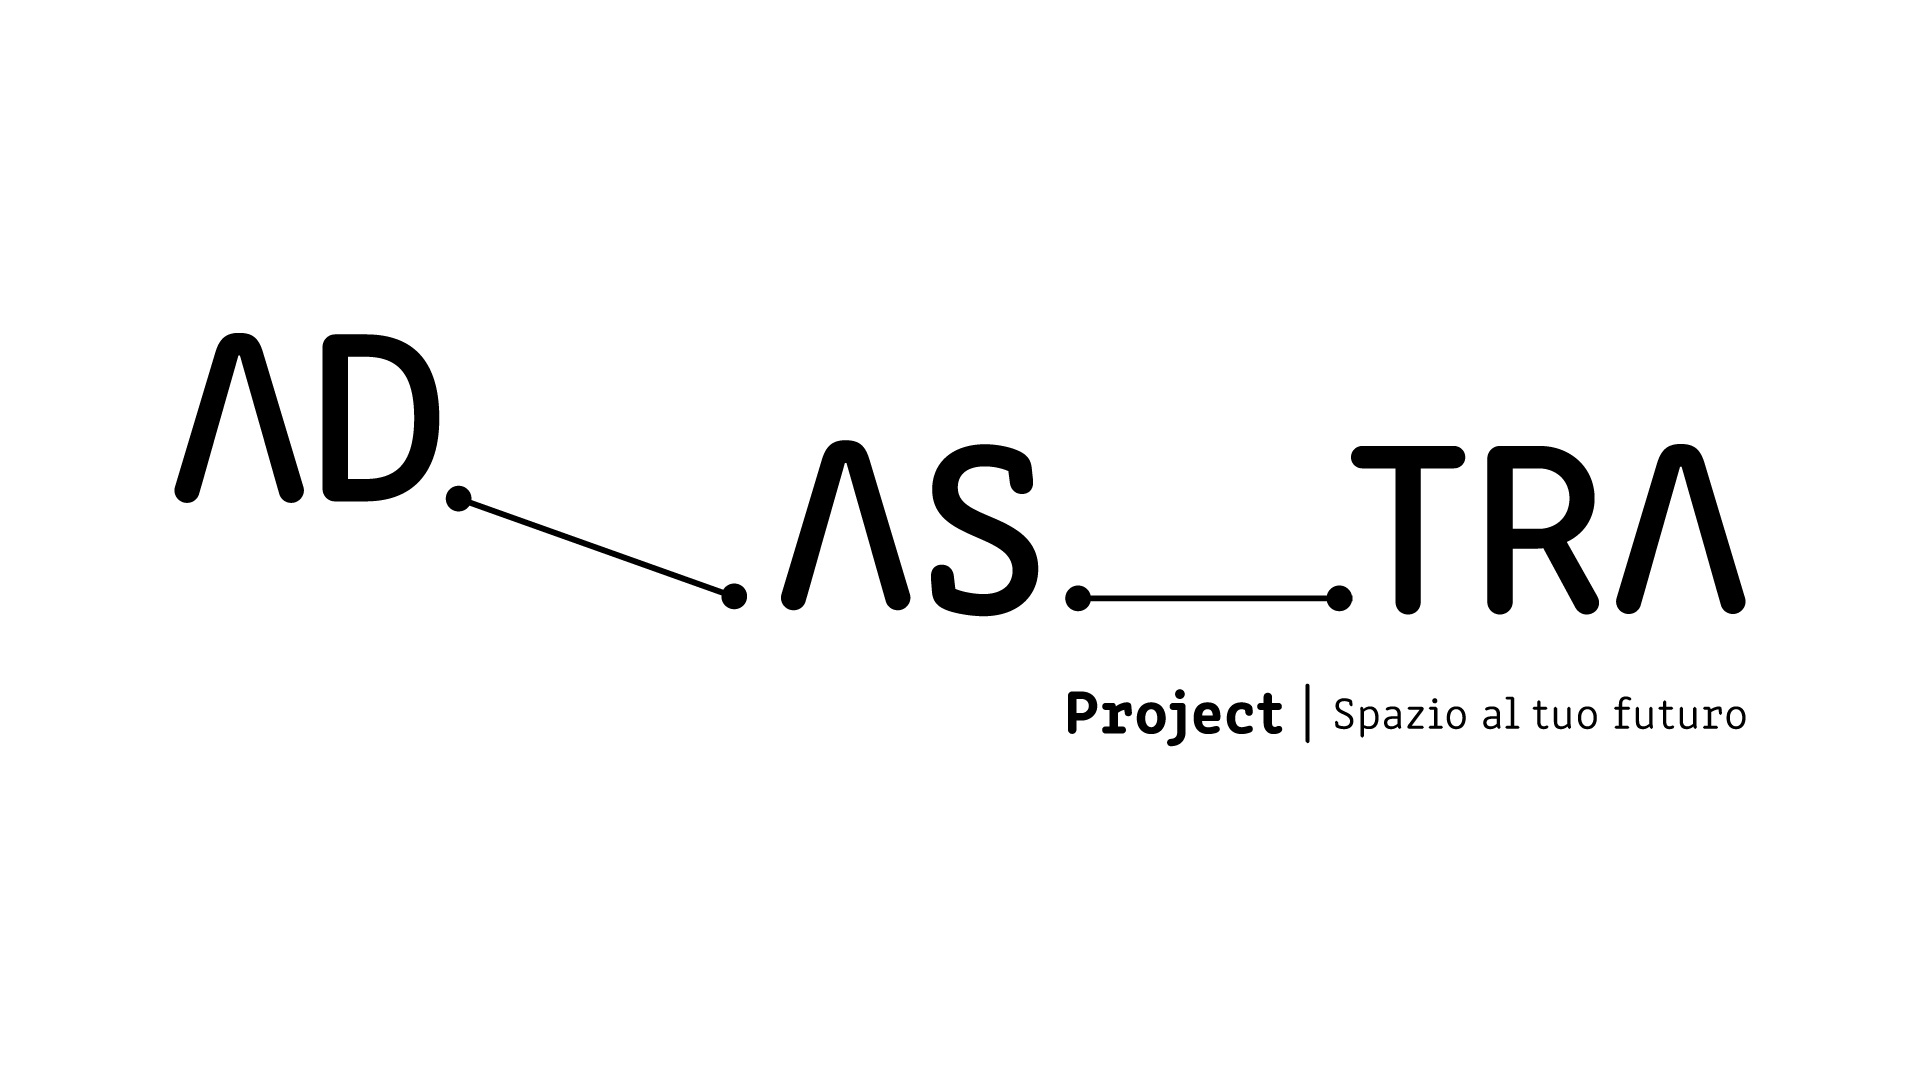 Ad Astra Project